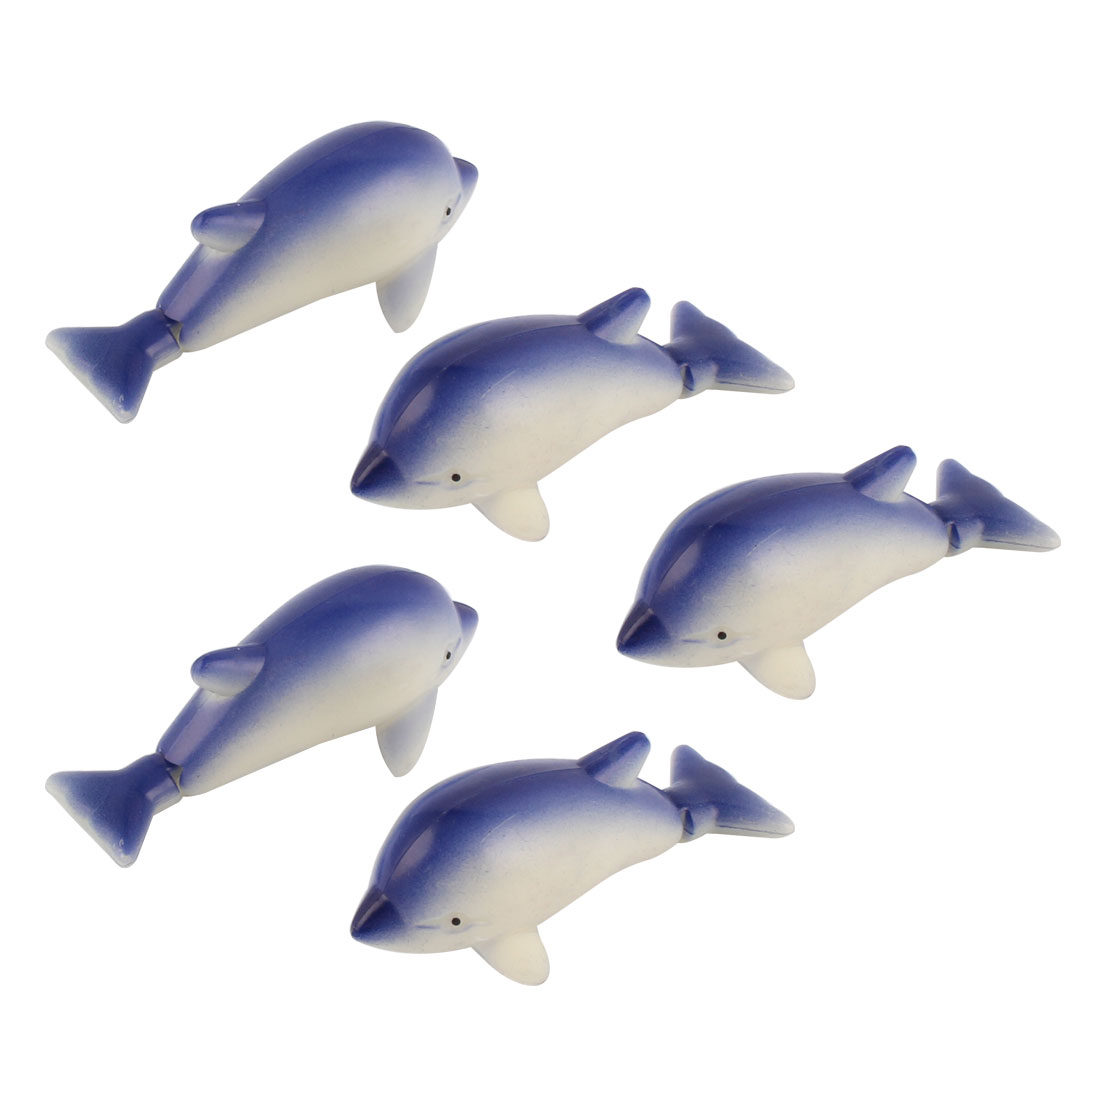 Plastic Artificial Aquarium Decoration Fish Tank Ornament Dolphin Blue Beige 5pcs